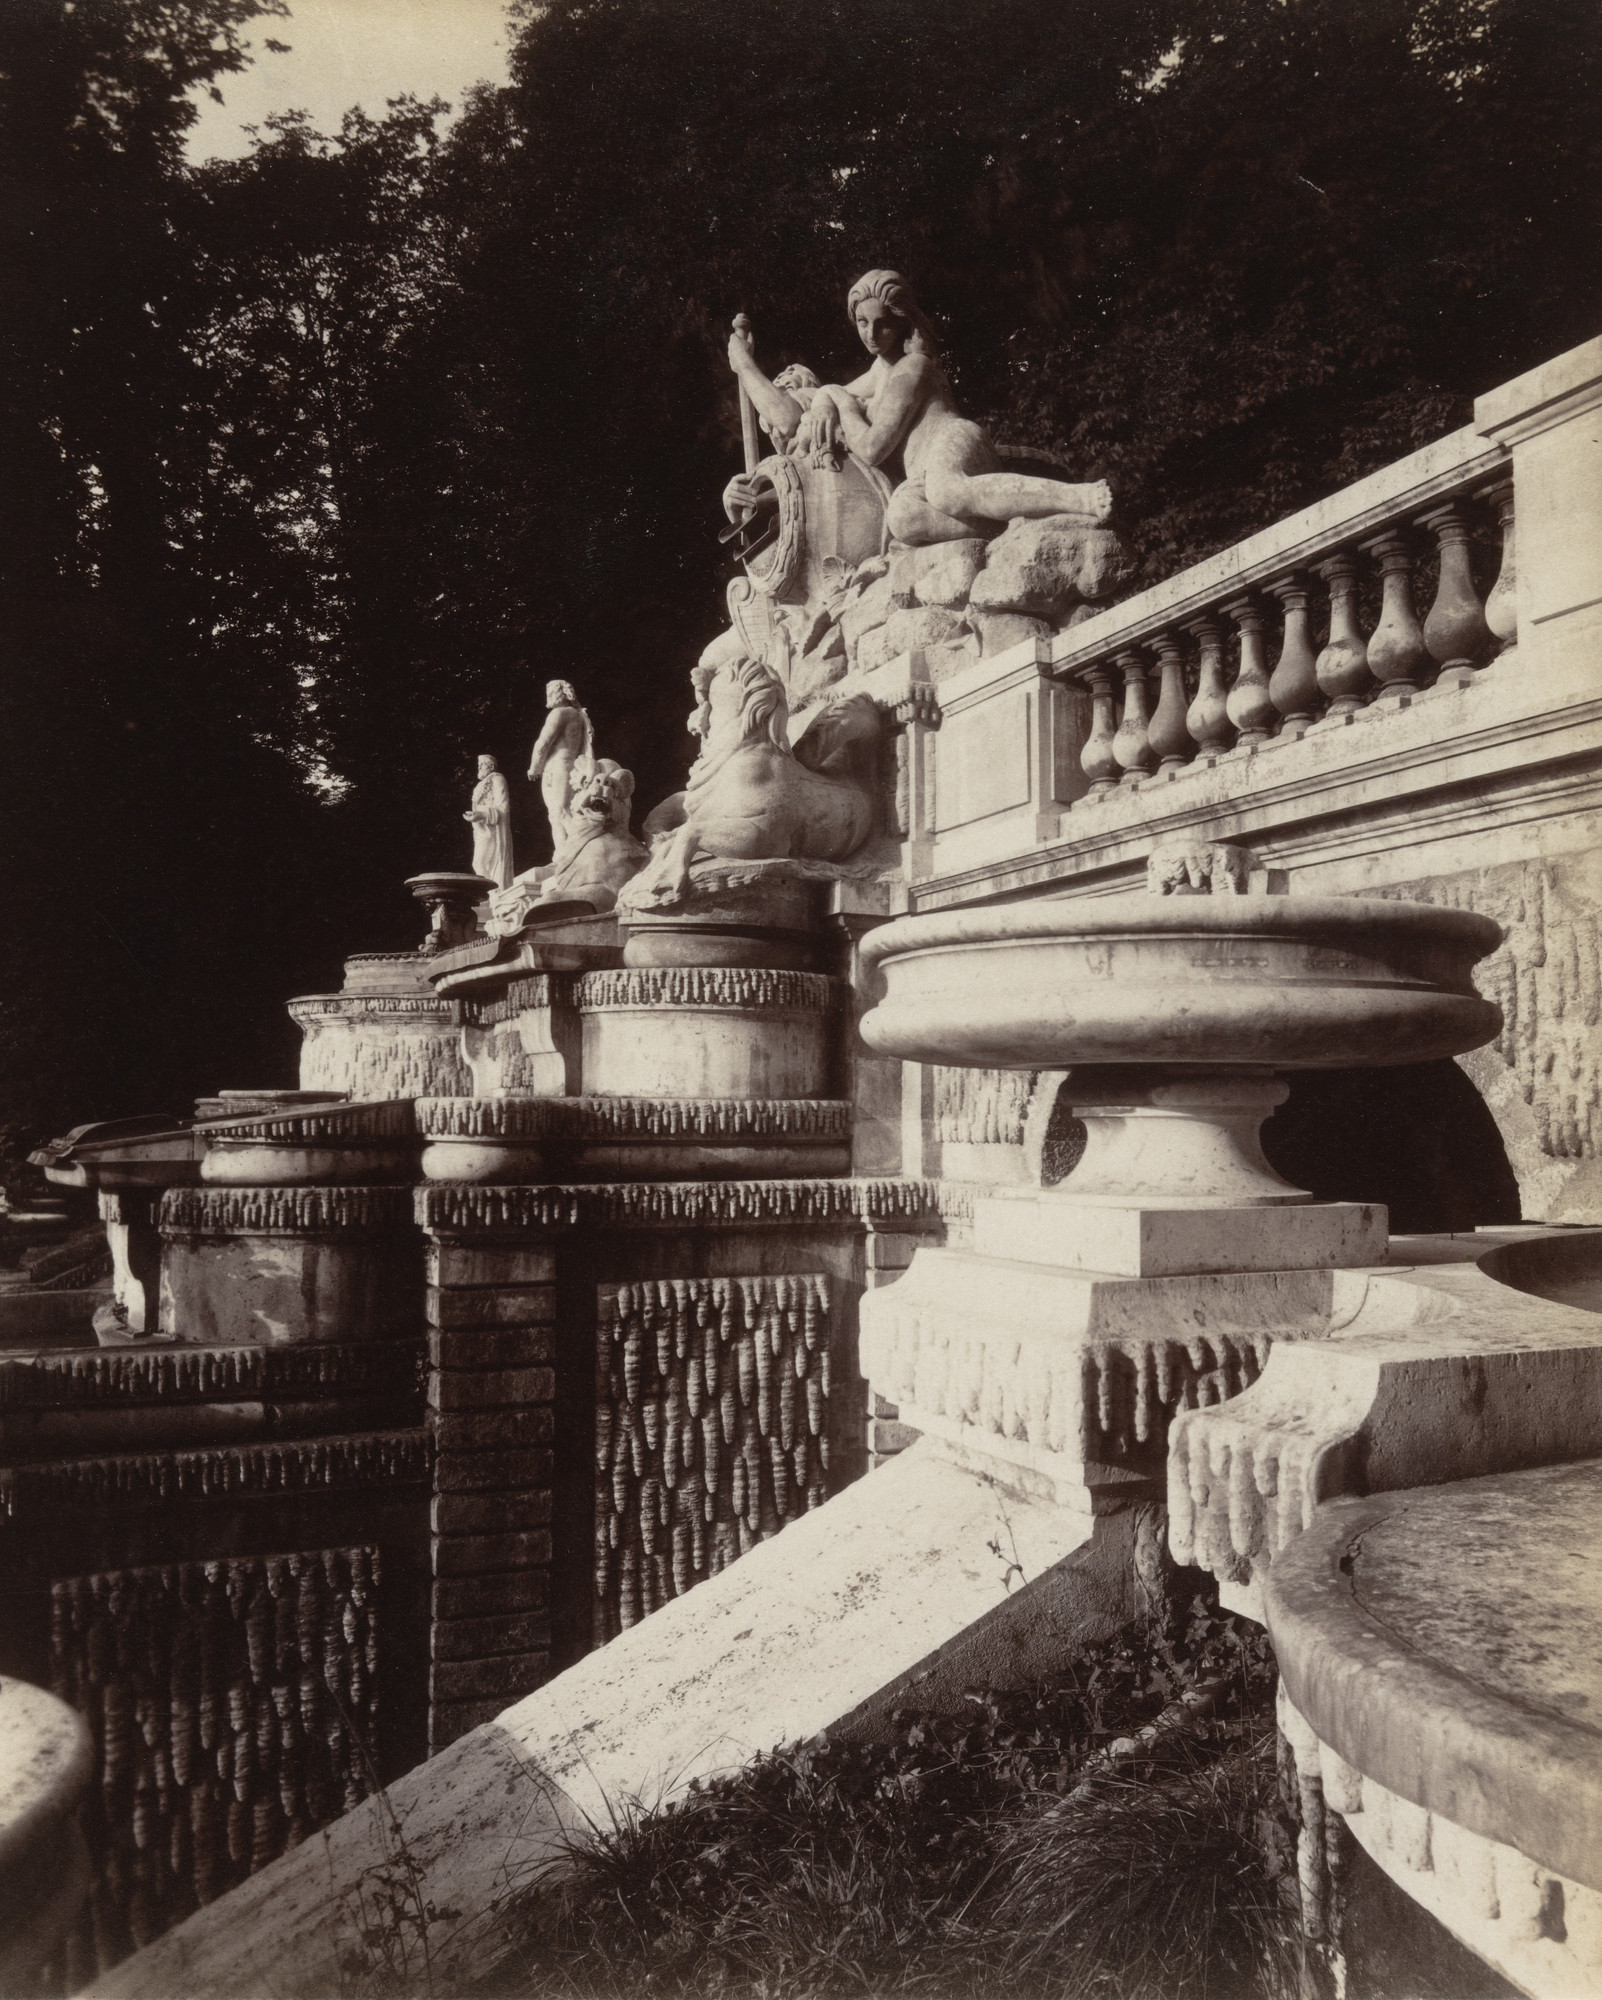 Eugène Atget. Saint-Cloud. 1923